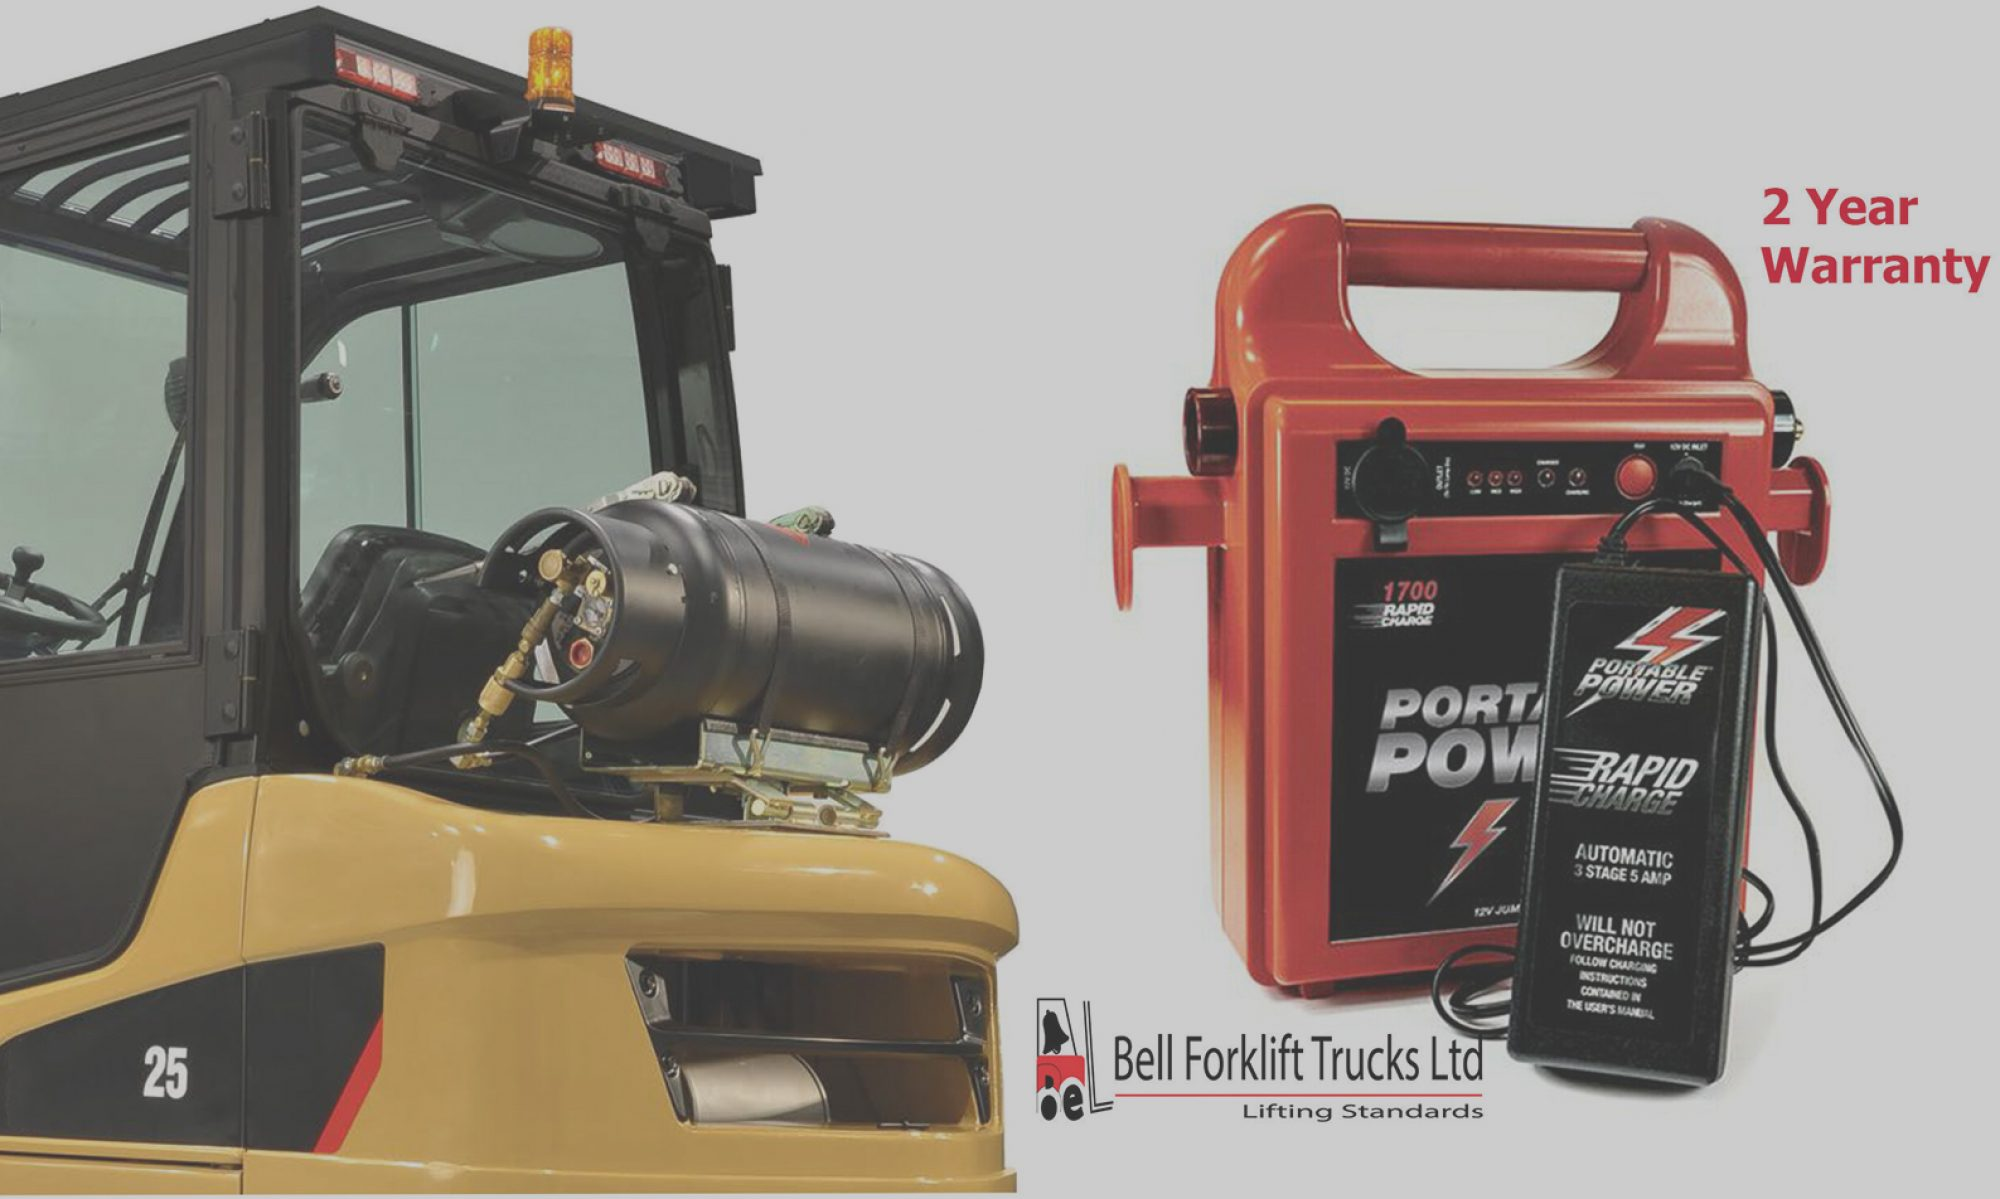 Forklift, Access and Warehouse Equipment Hire. Forklift Tyres. Portable Power Jump Starters & Accessories.